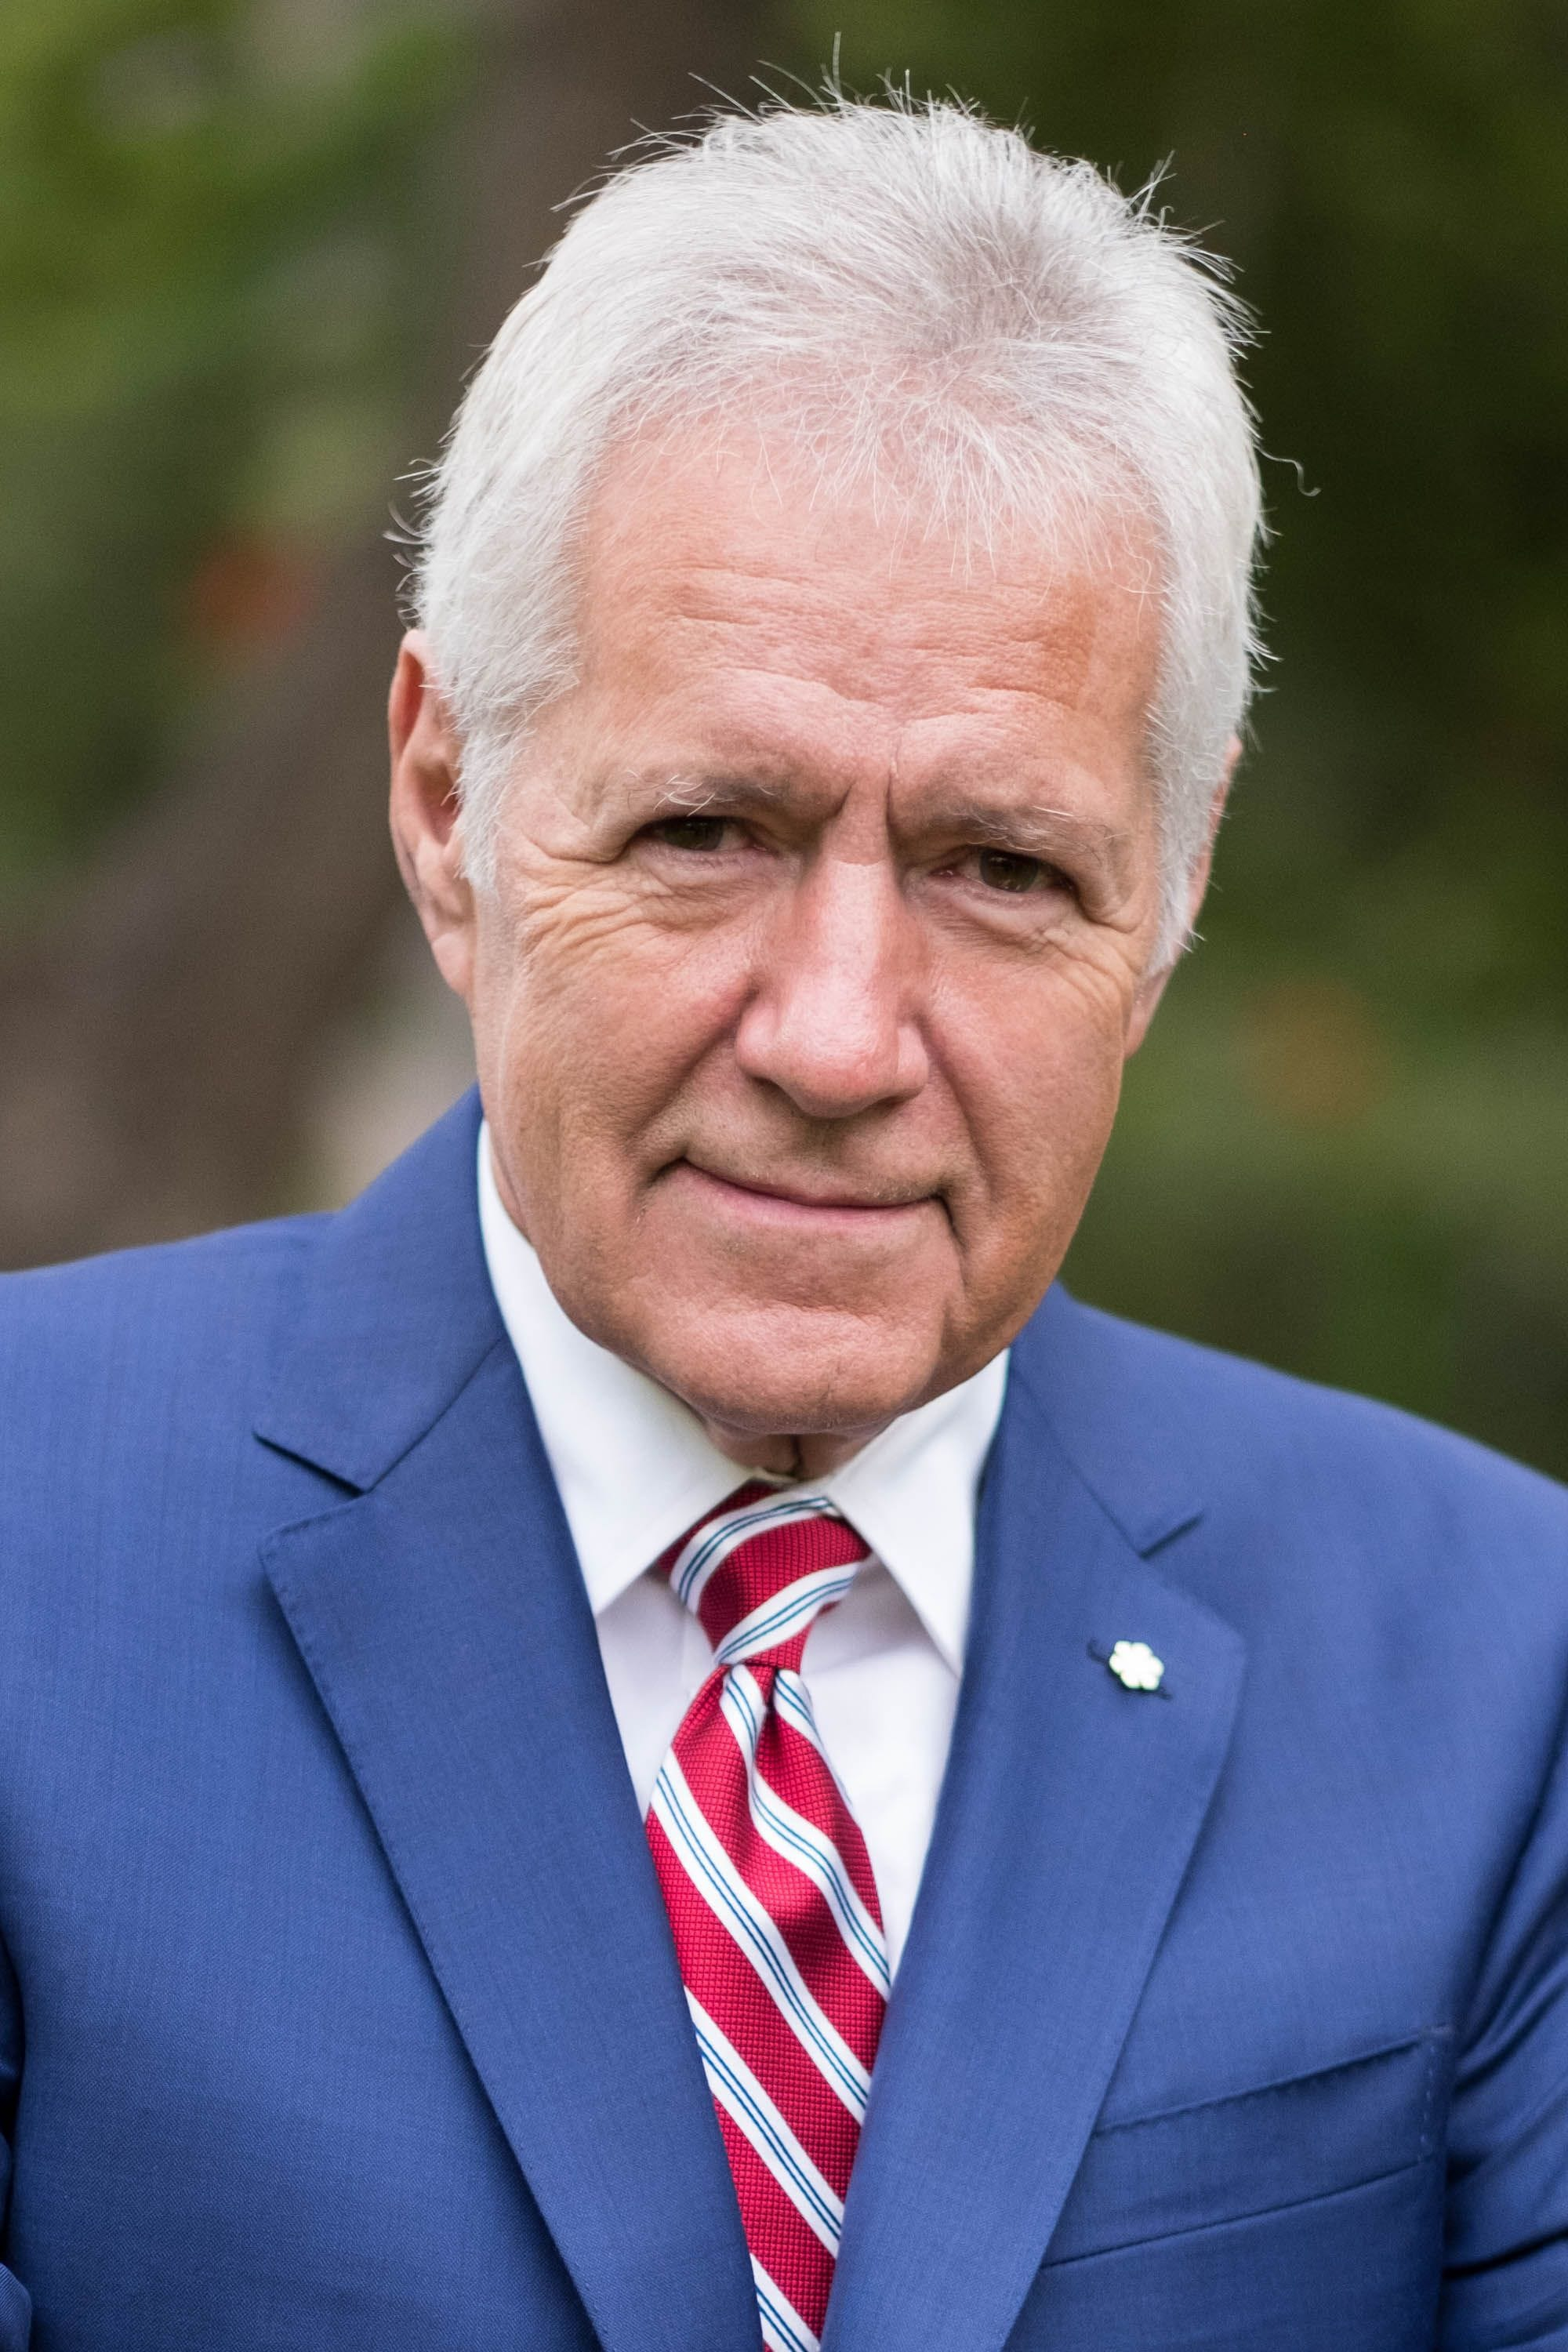 Alex Trebek takes medical leave from 'Jeopardy!' after ...